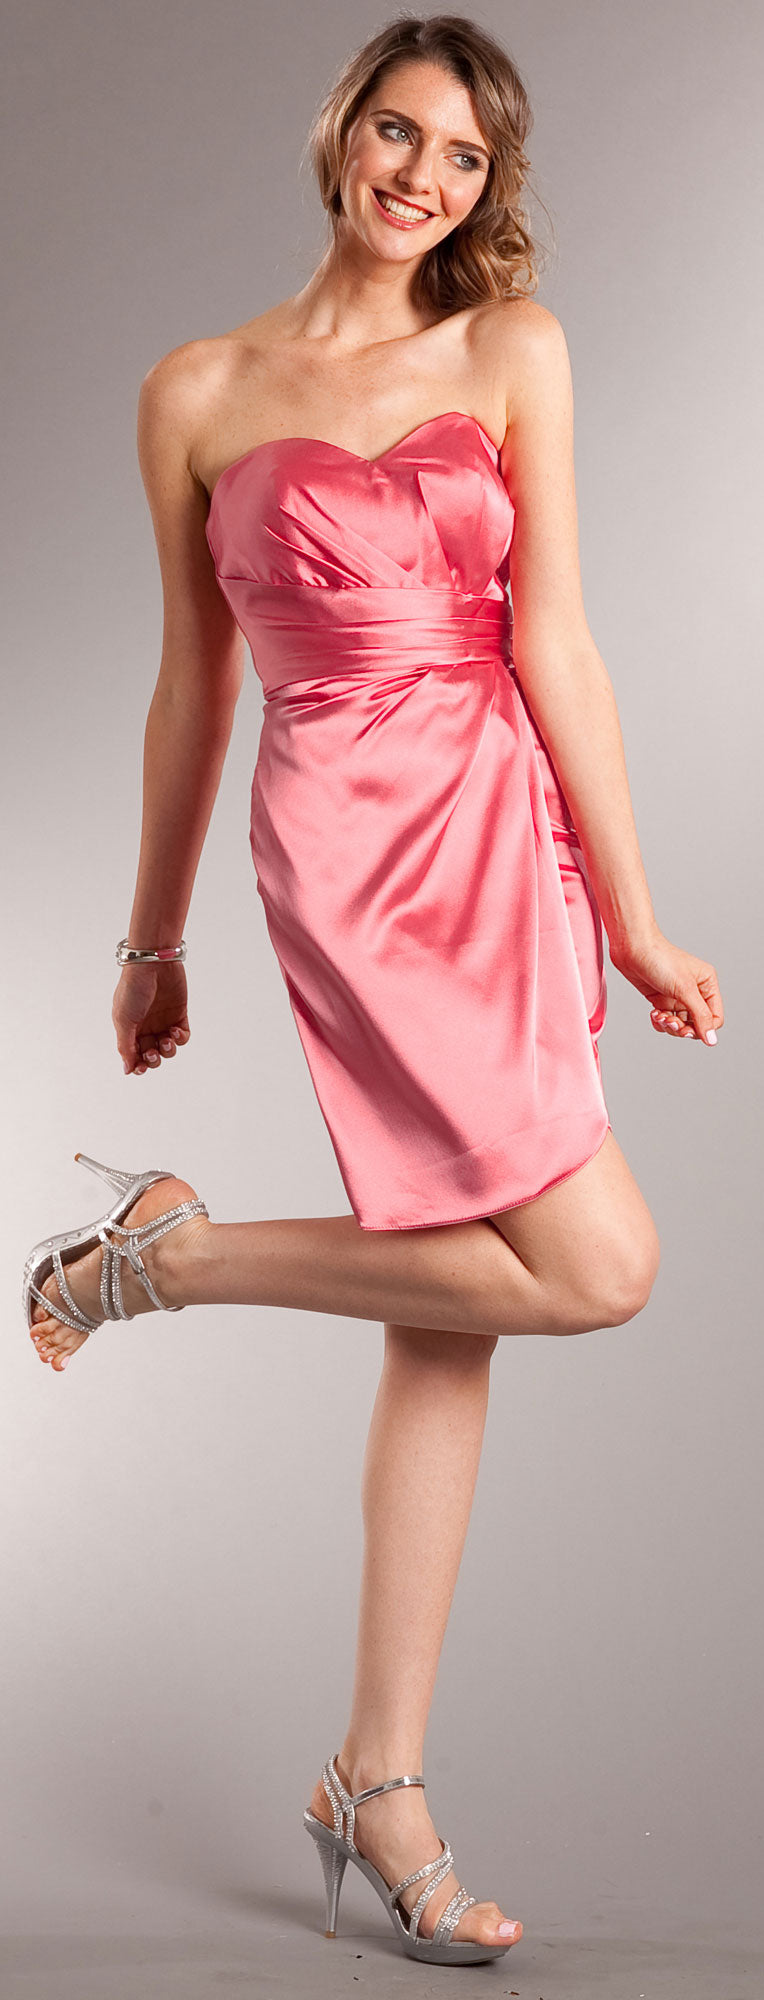 Image of Strapless Wrap Around Short Bridesmaid Party Dress in Coral